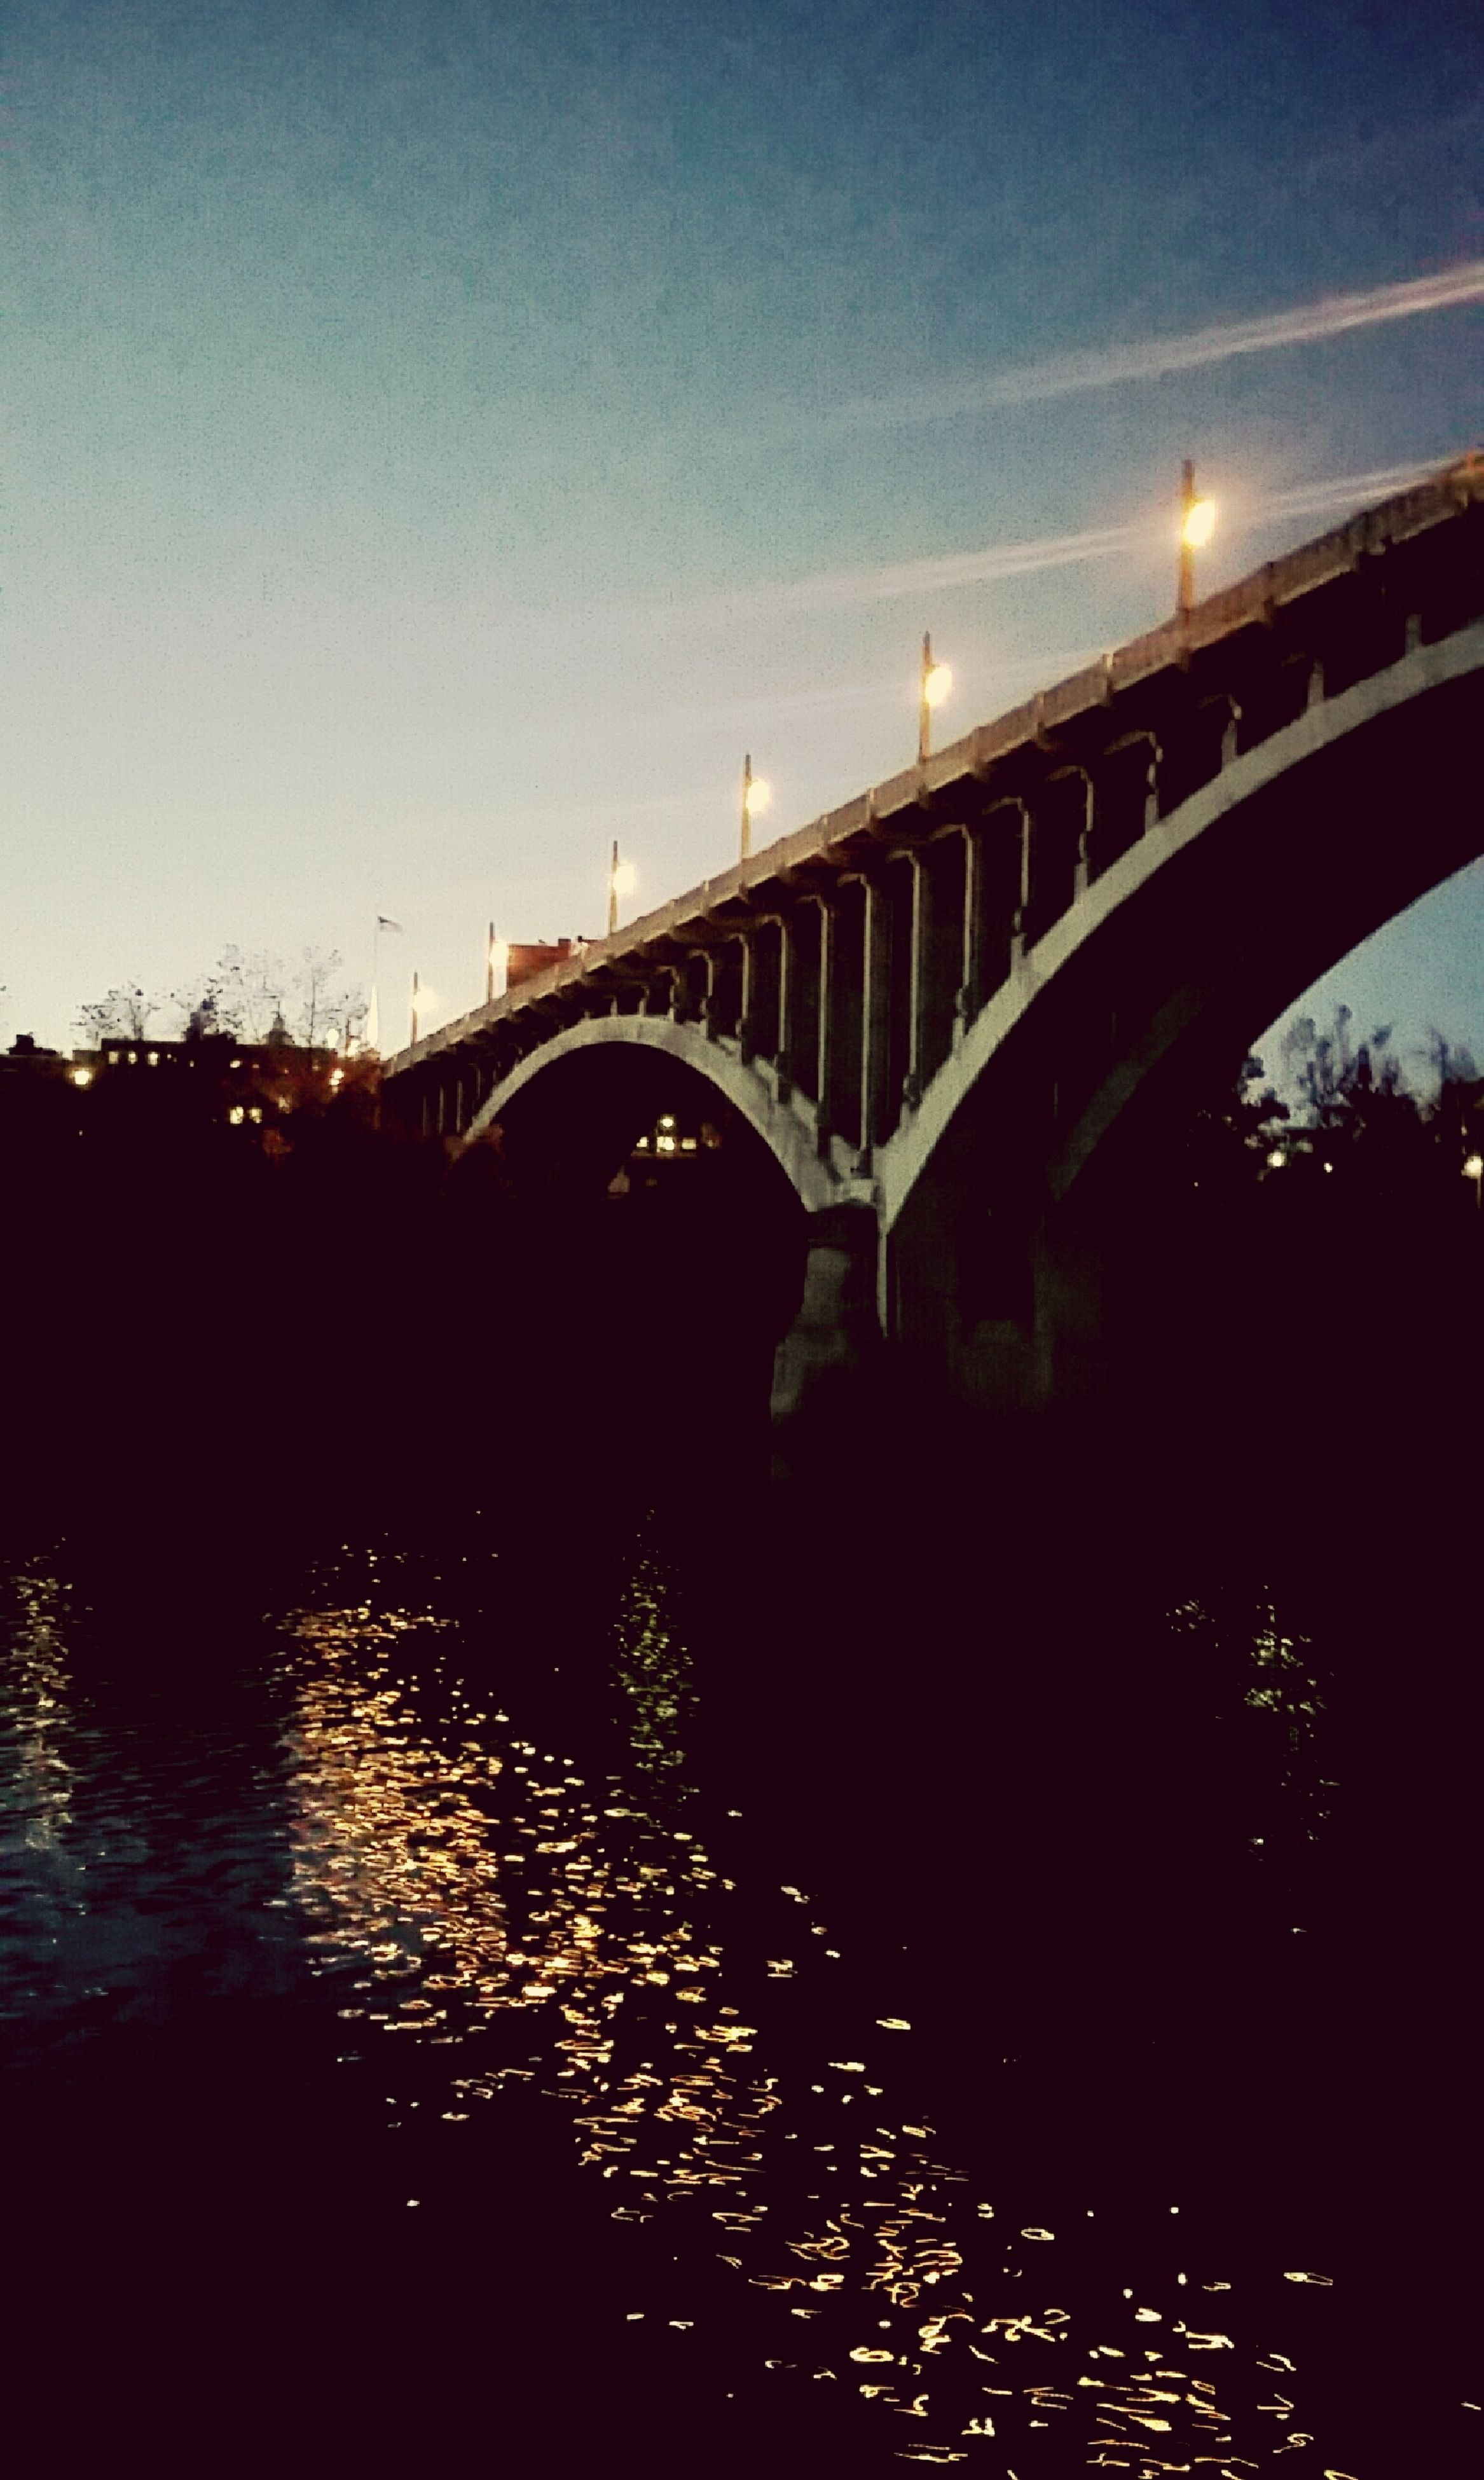 architecture, built structure, connection, bridge - man made structure, water, river, bridge, engineering, illuminated, sky, building exterior, night, clear sky, reflection, waterfront, transportation, arch bridge, city, outdoors, no people